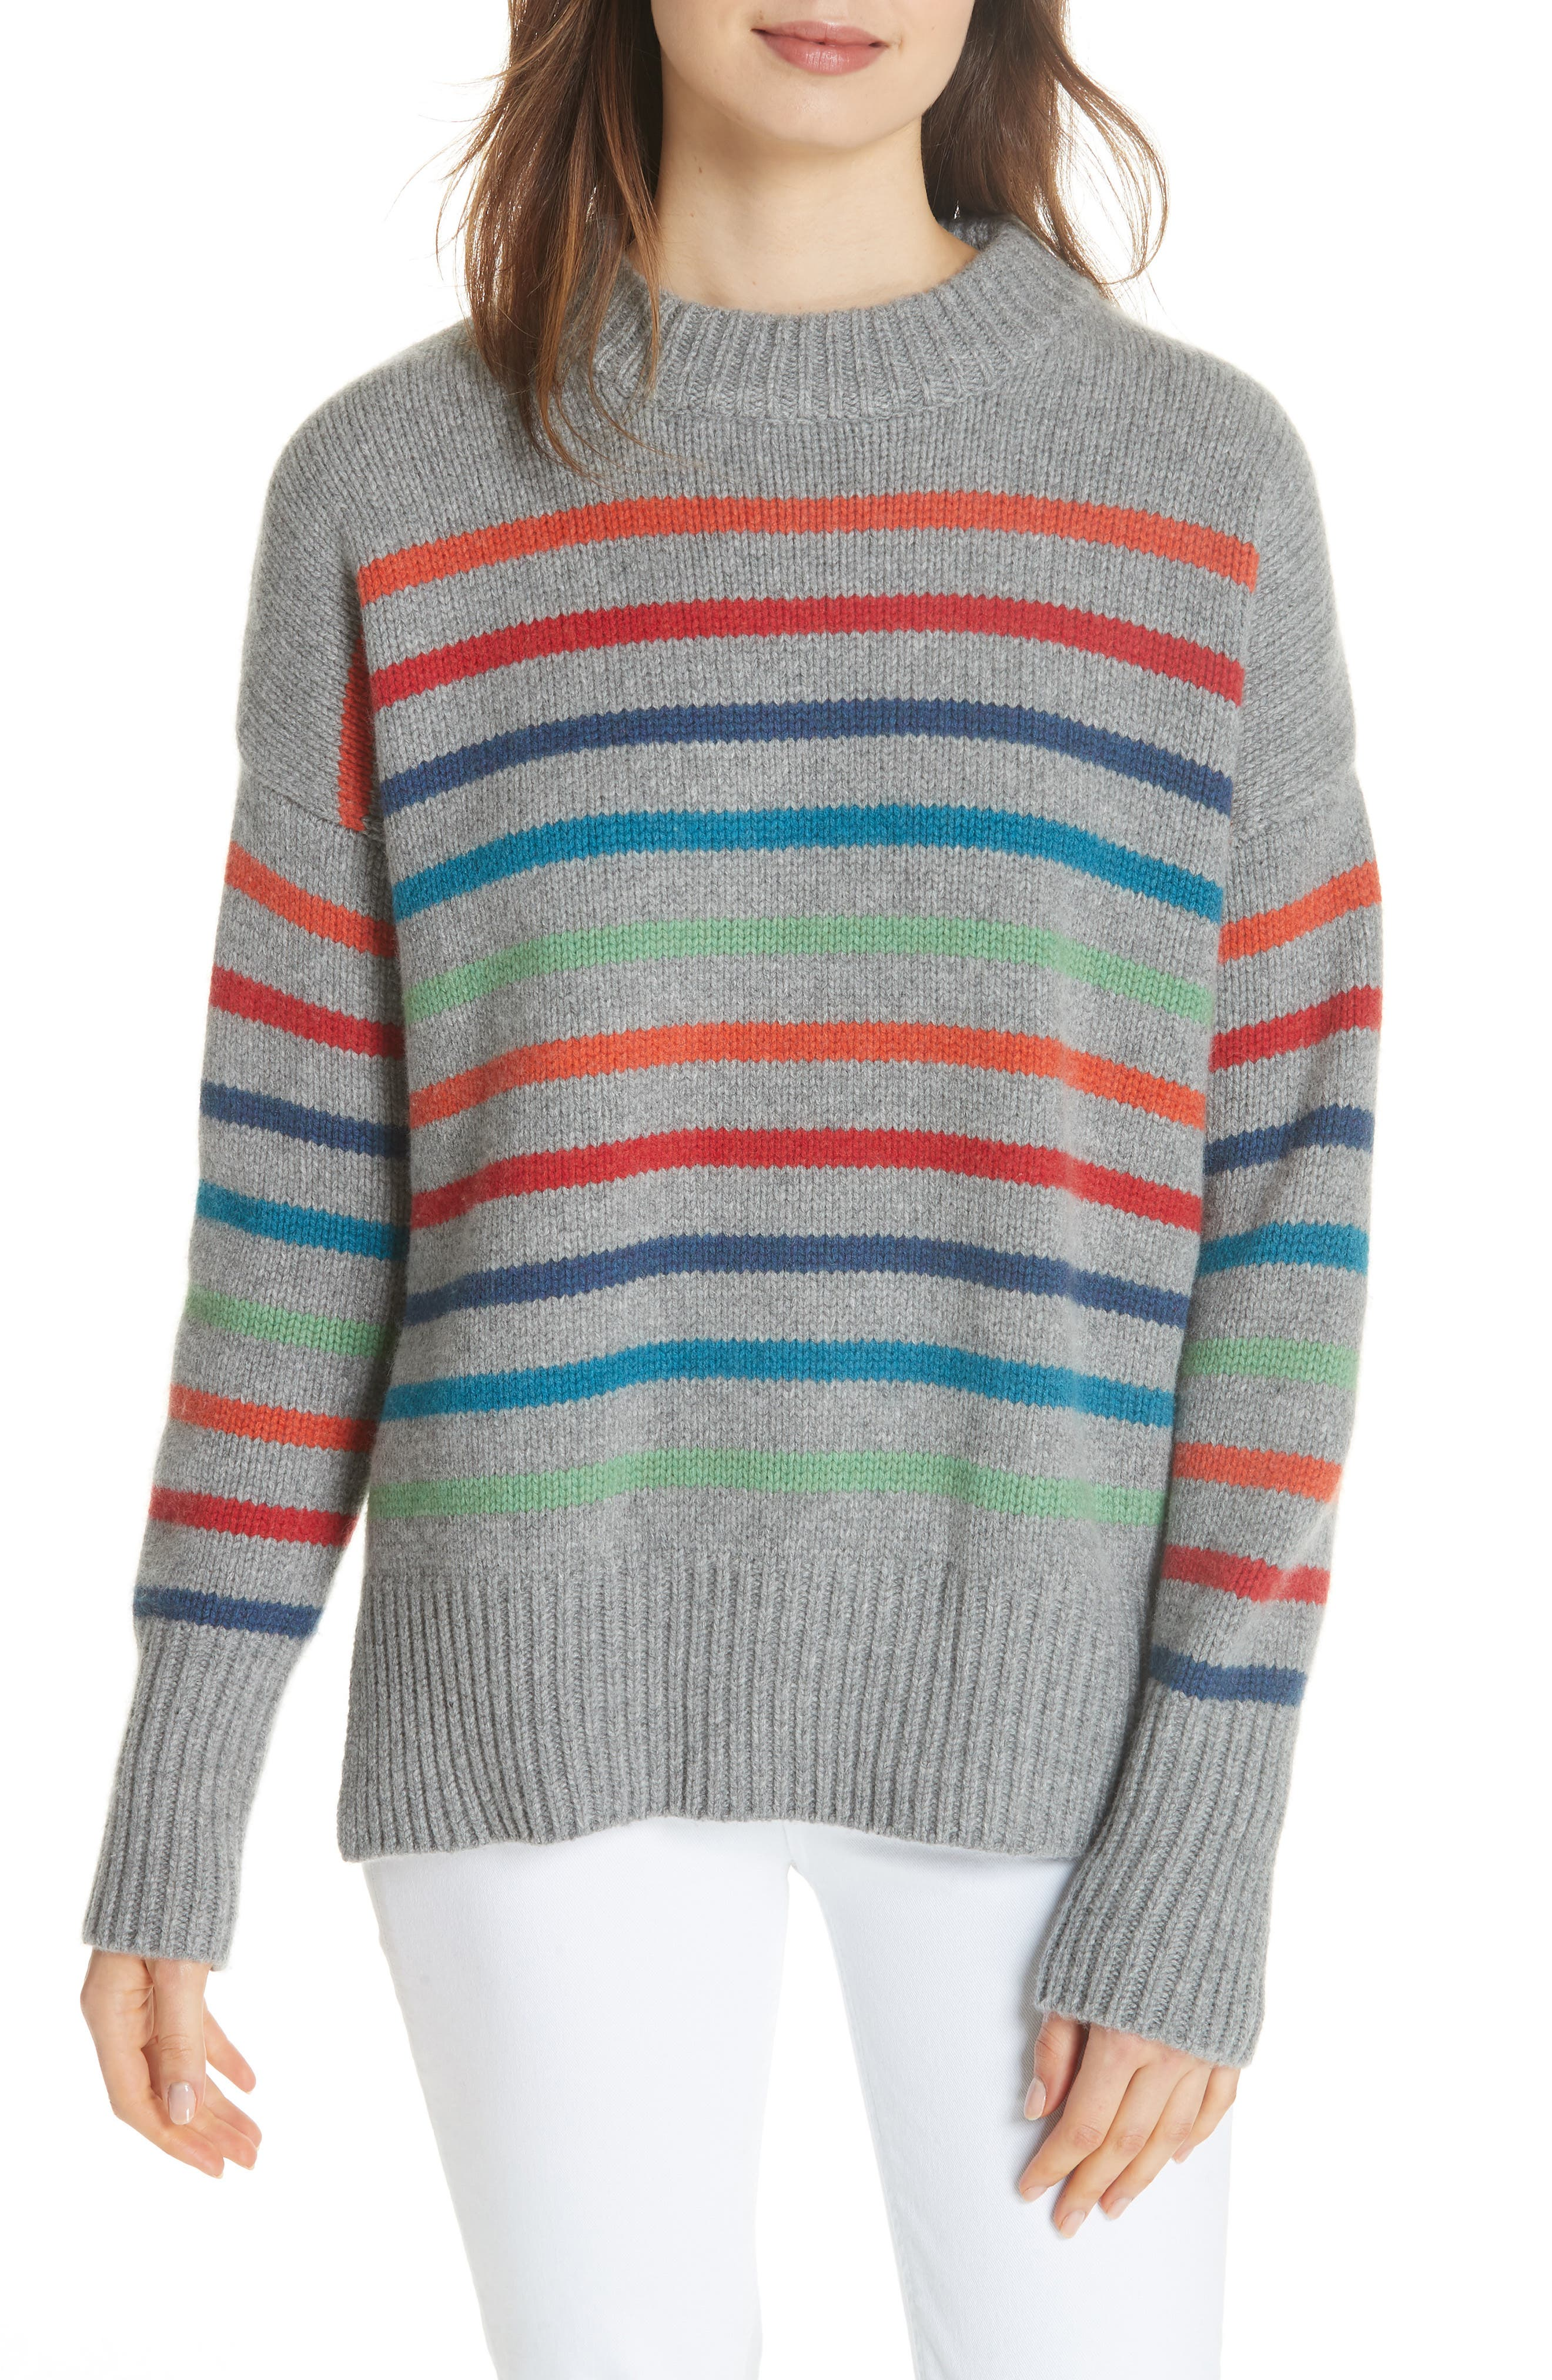 Marin Wool & Cashmere Sweater,                             Main thumbnail 1, color,                             RAINBOW STRIPE